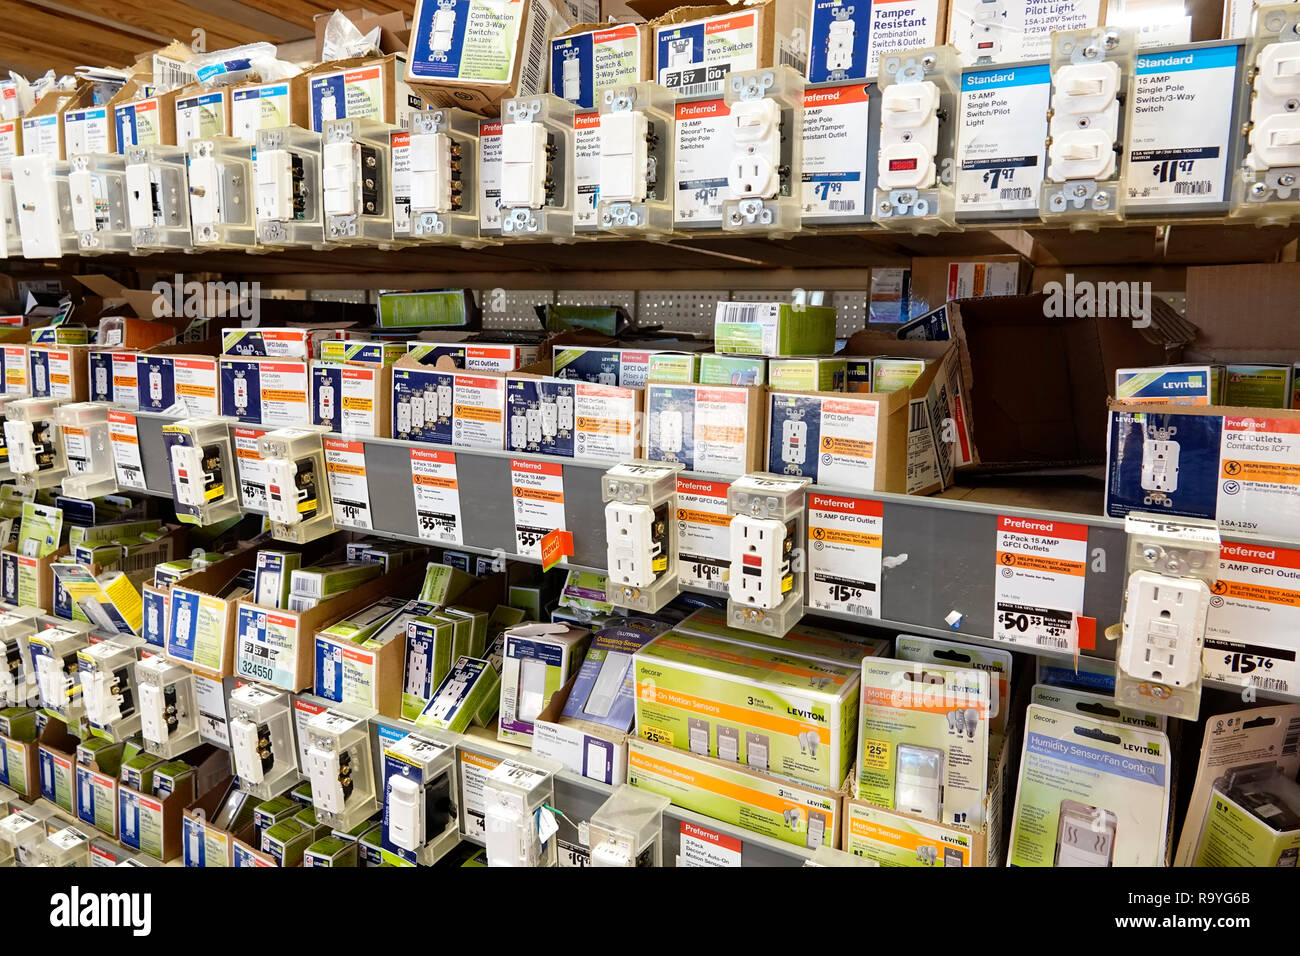 Miami Florida The Home Depot inside hardware big box store GFCI electric outlet outlets light switch switches do it yourself sale display shelves shop - Stock Image